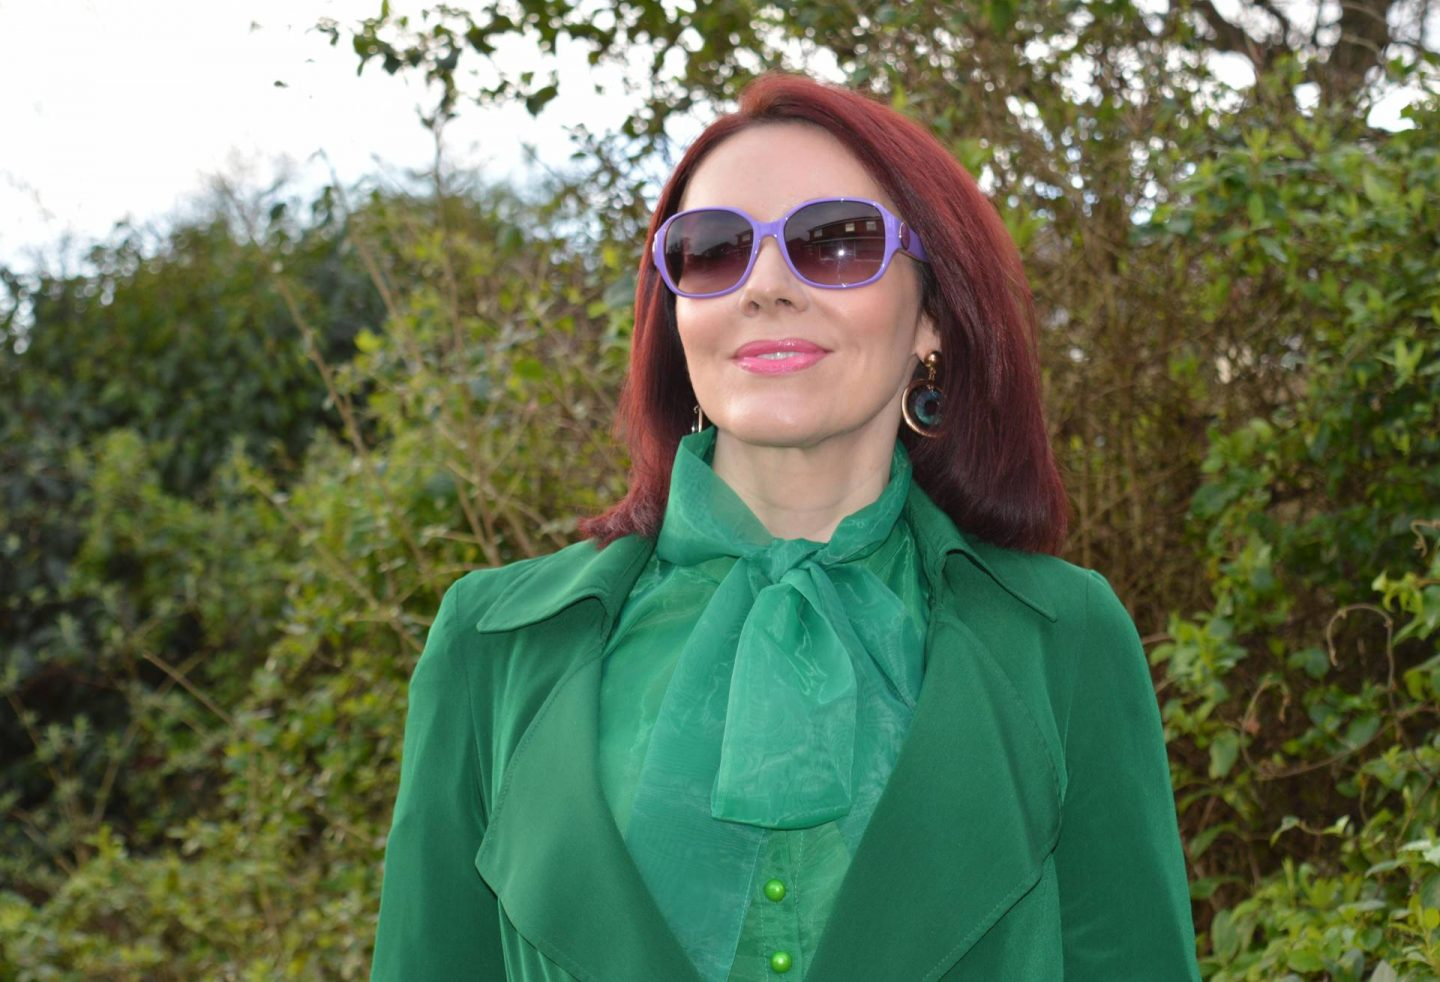 emerald green Papaya trenchcoat, green organza bow blouse, purple Ted Baker sunglasses